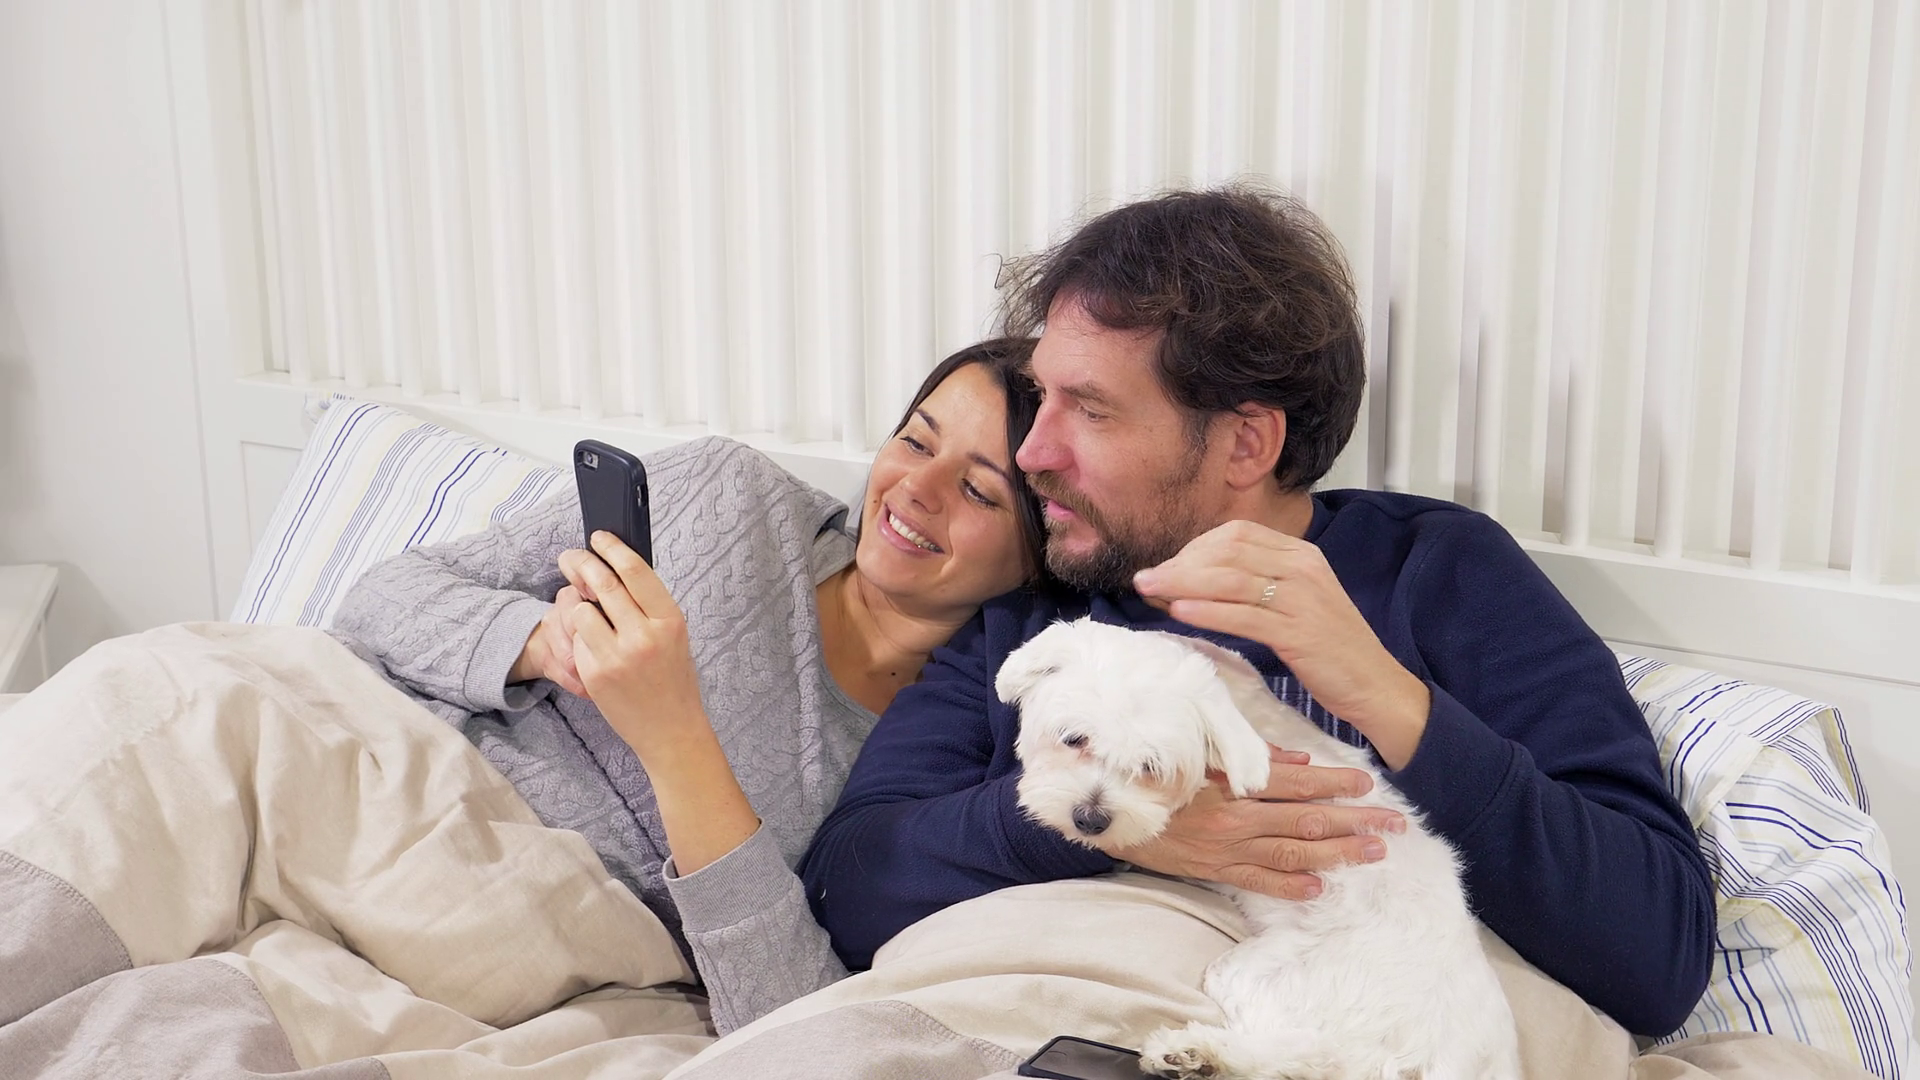 videoblocks-happy-couple-in-love-looking-pictures-on-phone-holding-dog_b0lerjyzhm_thumbnail-full05